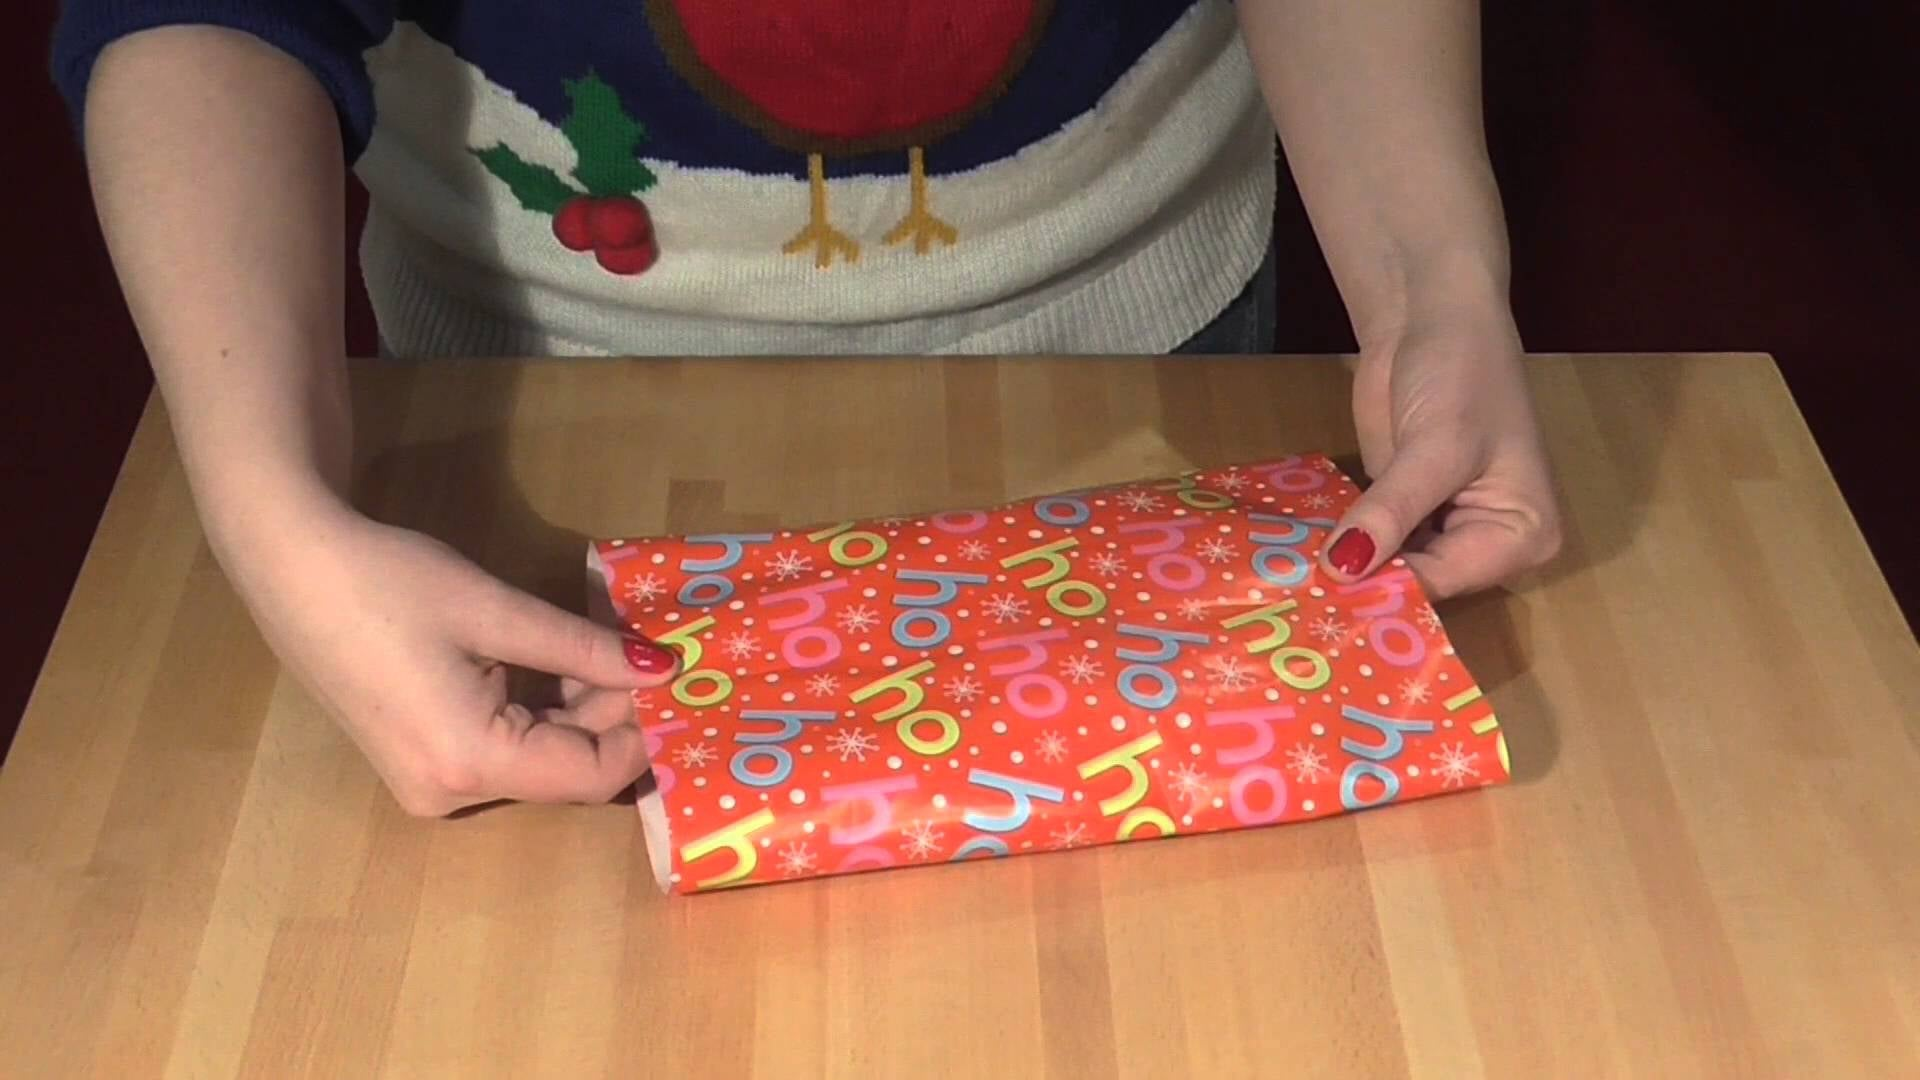 the mathematical way to wrap presents of various shapes